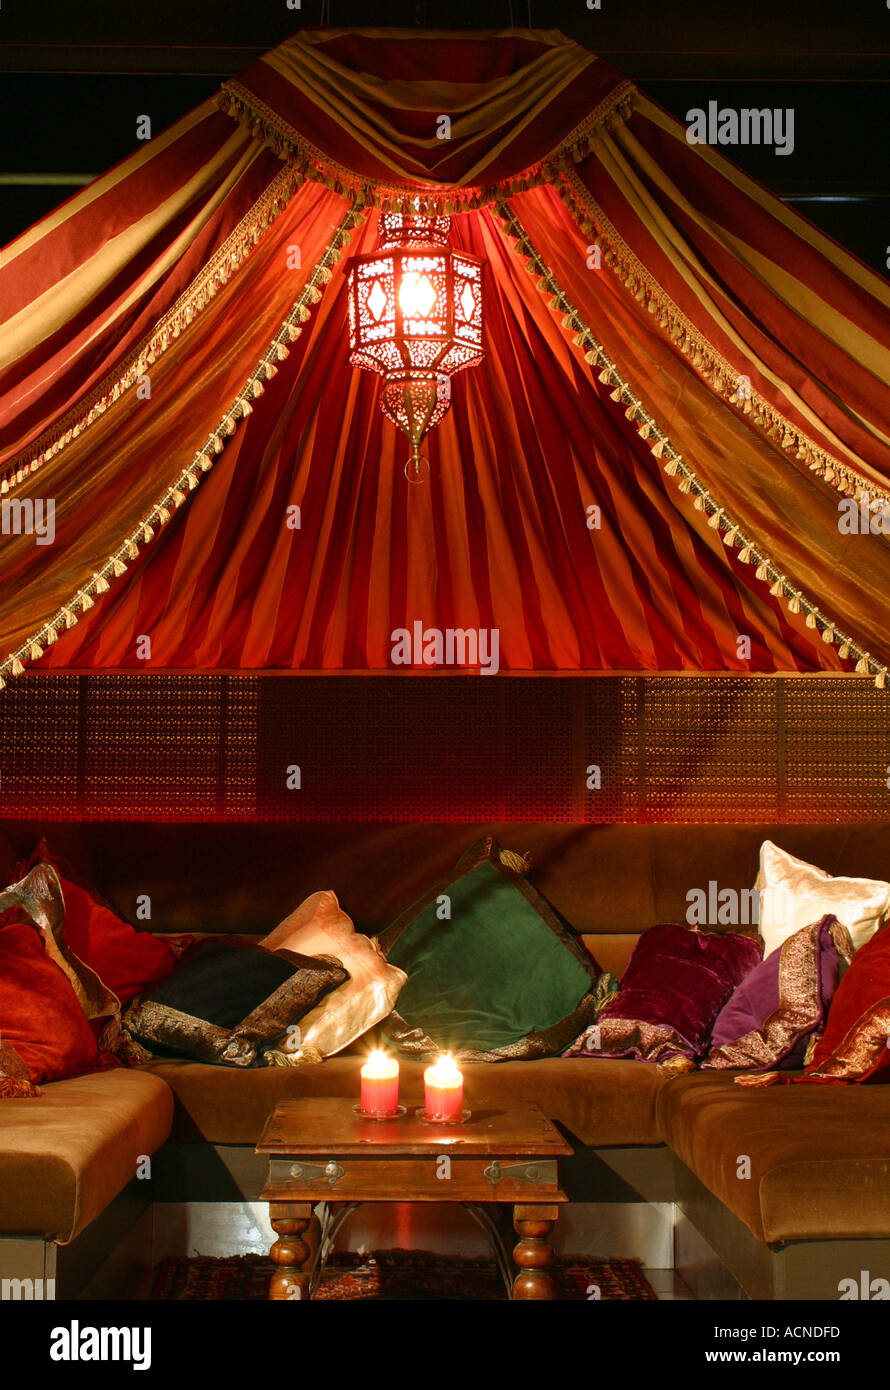 Moroccan tent and furnishings with traditional North African designs including cushions wooden screens and wooden stools  sc 1 st  Alamy & Moroccan tent and furnishings with traditional North African ...